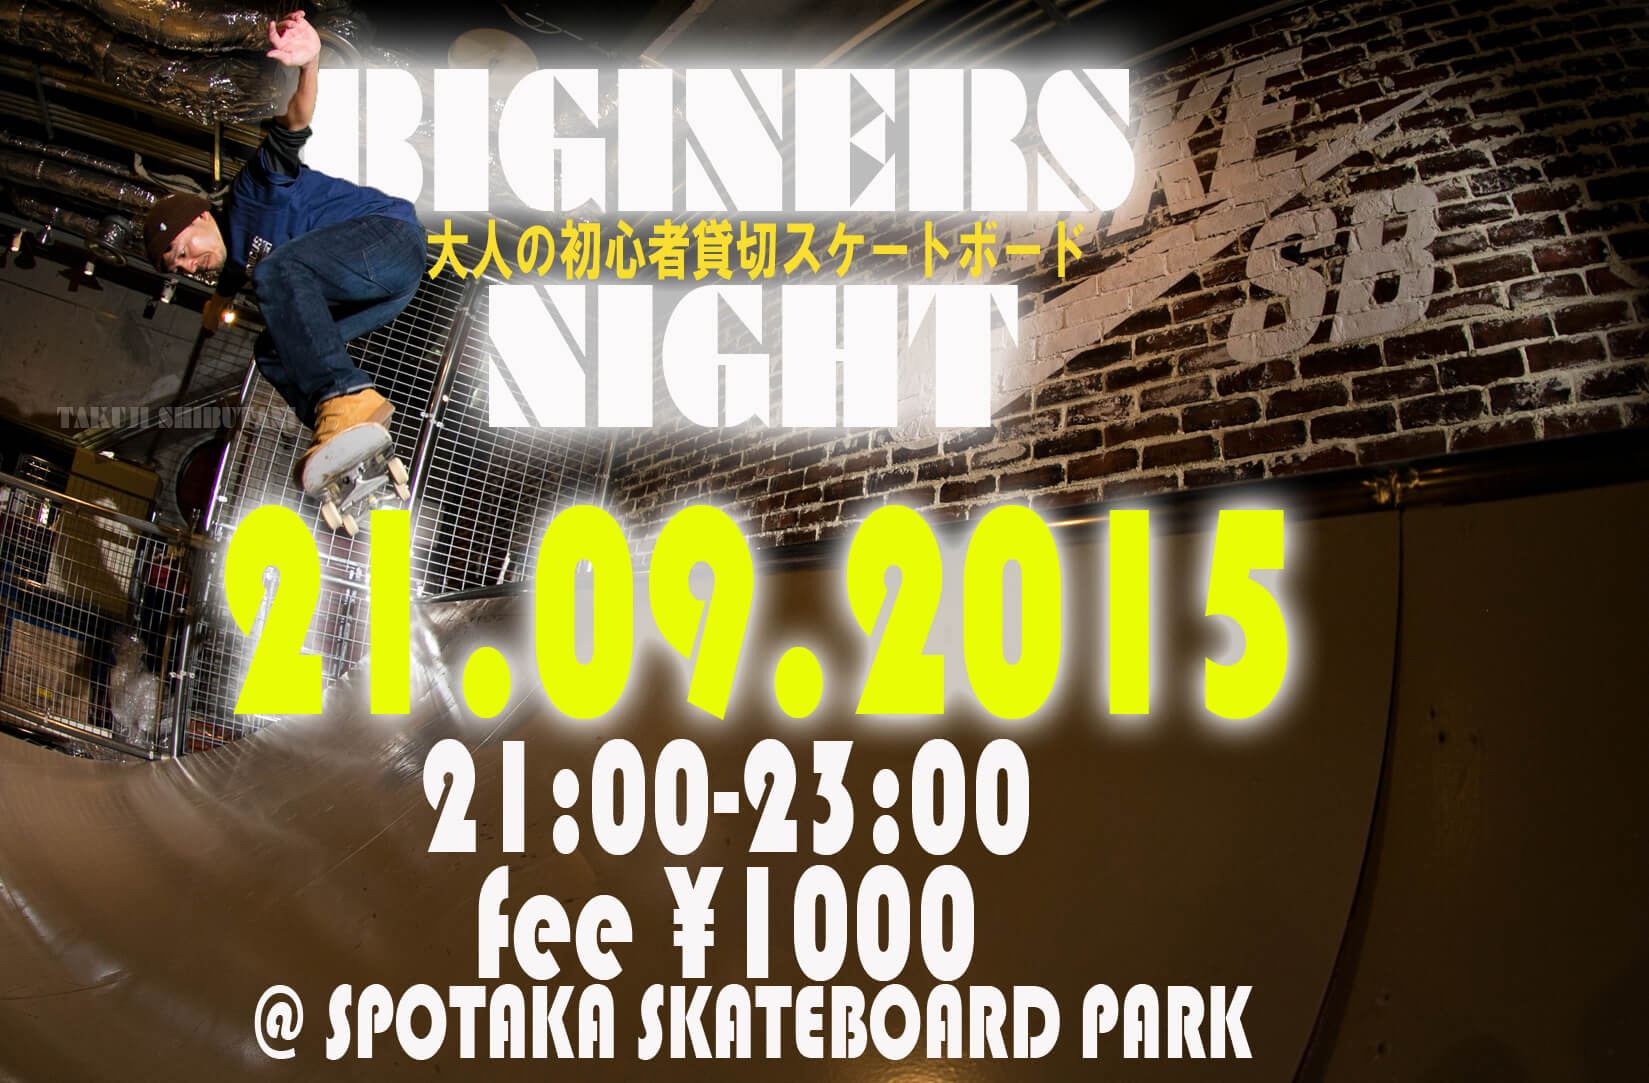 SKATEBOARD BIGINNERS NIGHT!